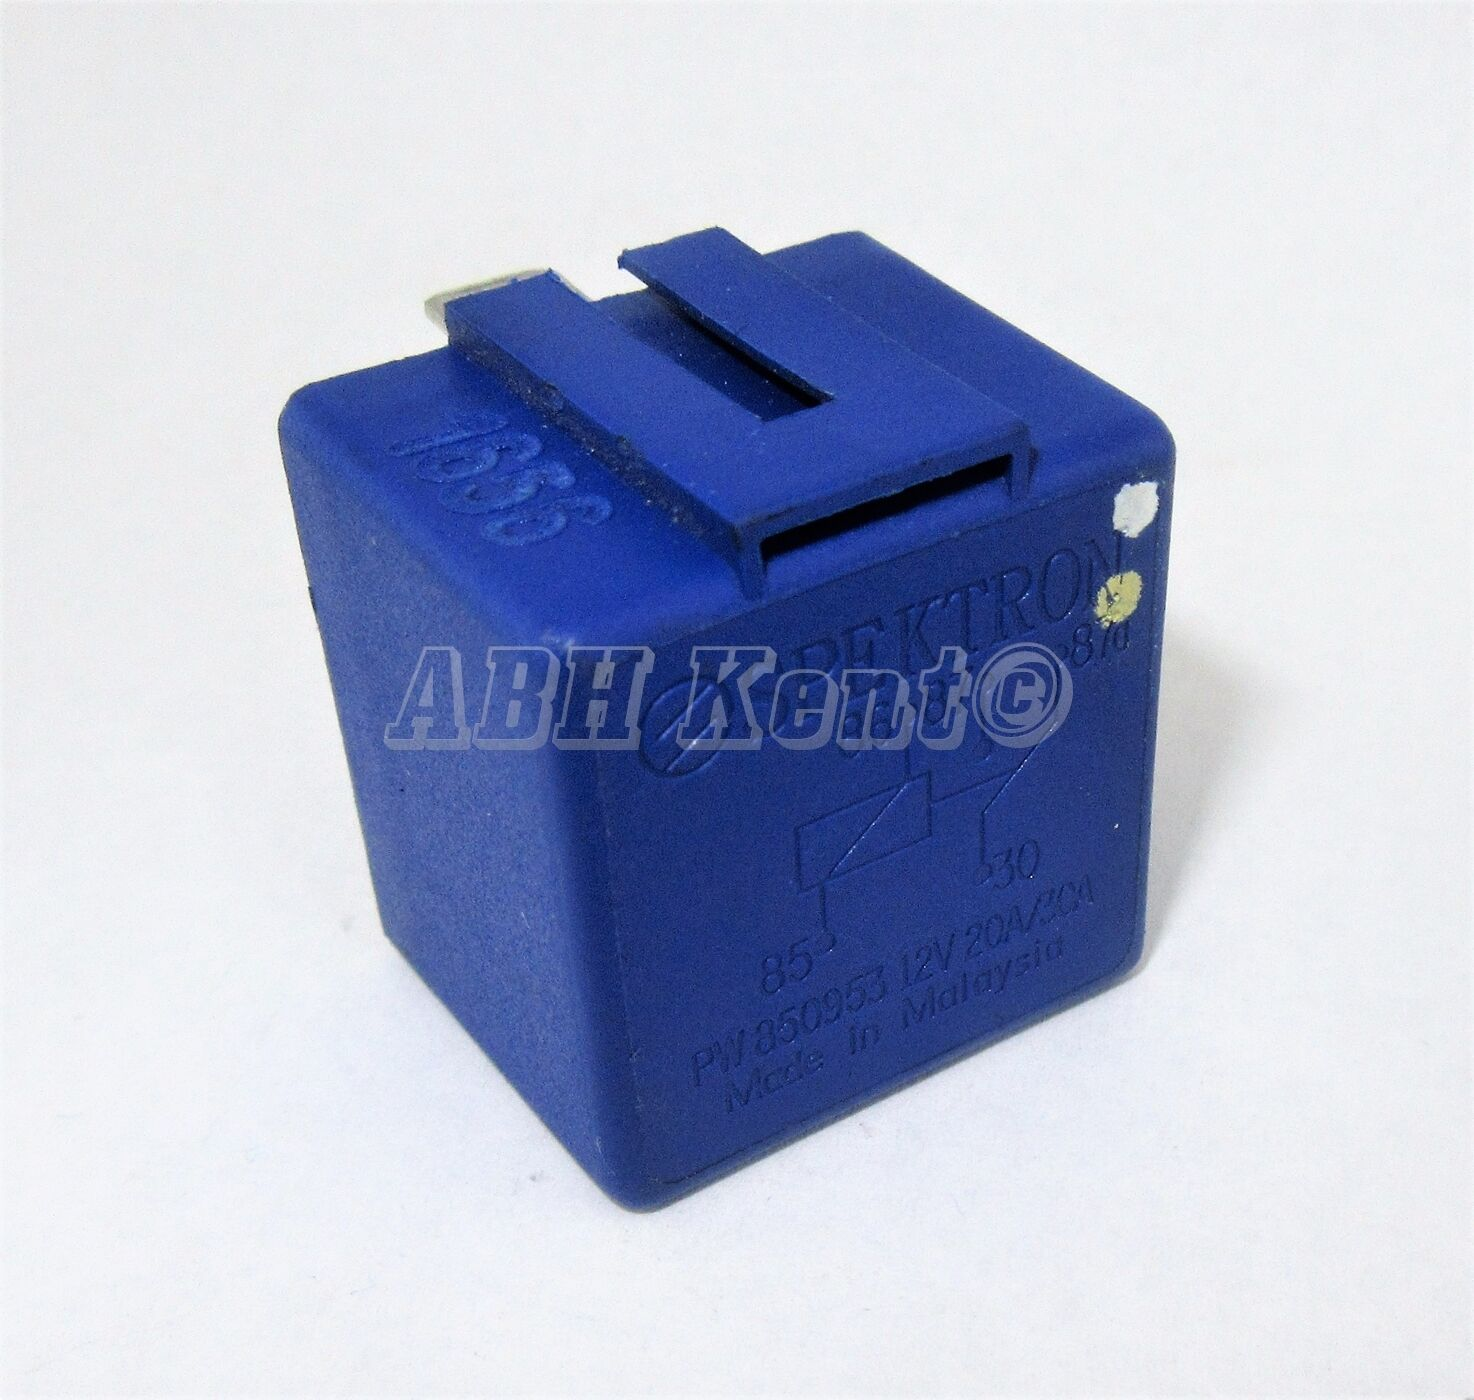 595 Proton 90 15 Multi Use 5 Pin Blue Relay Pw850953 Spektron 12v Lucas 1 Of 5only 2 Available